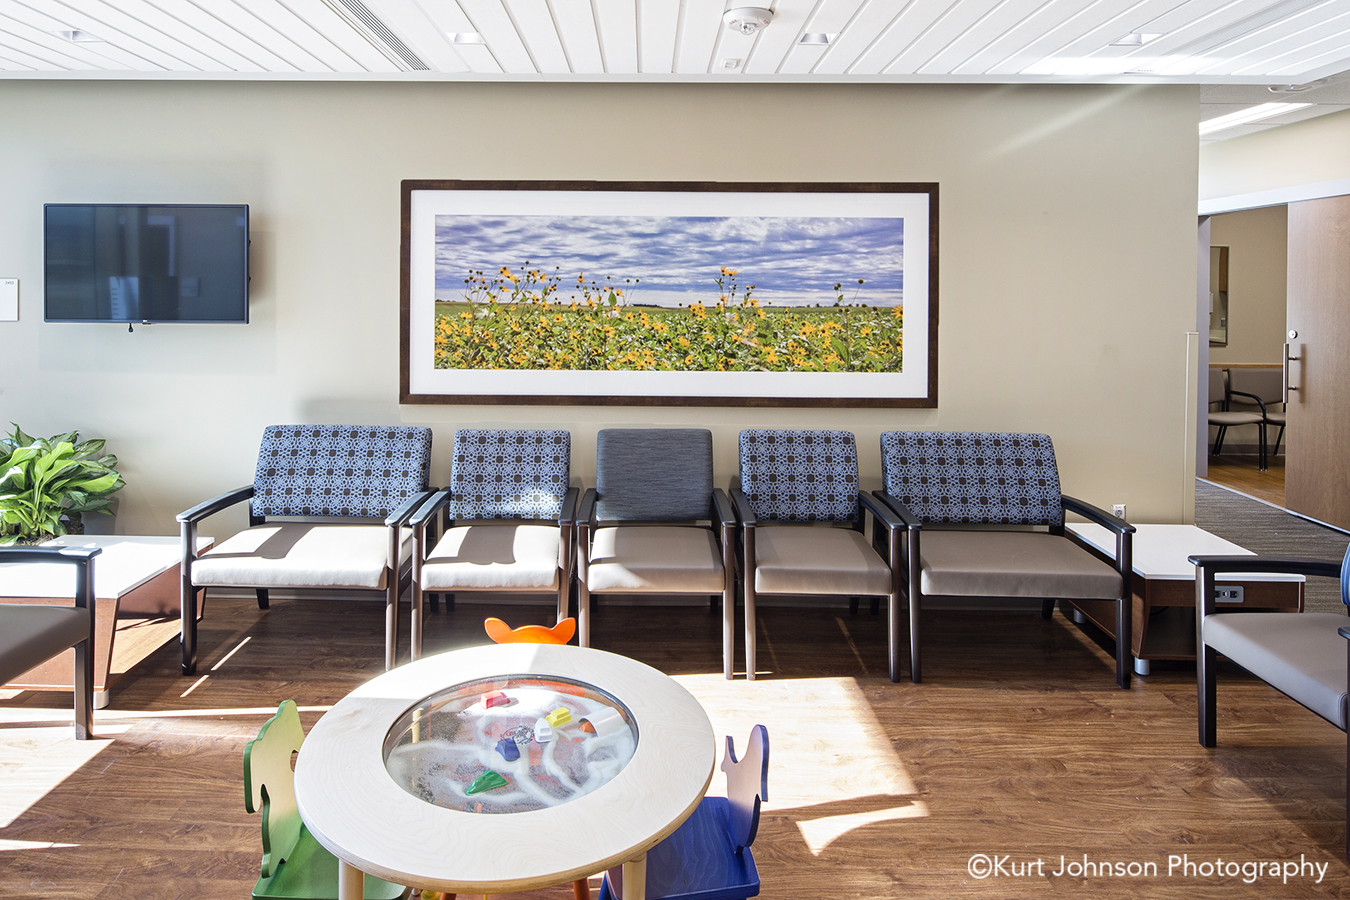 architectural interiors healthcare architecture interior design hospital clinic CHI lobby waiting installation framed art